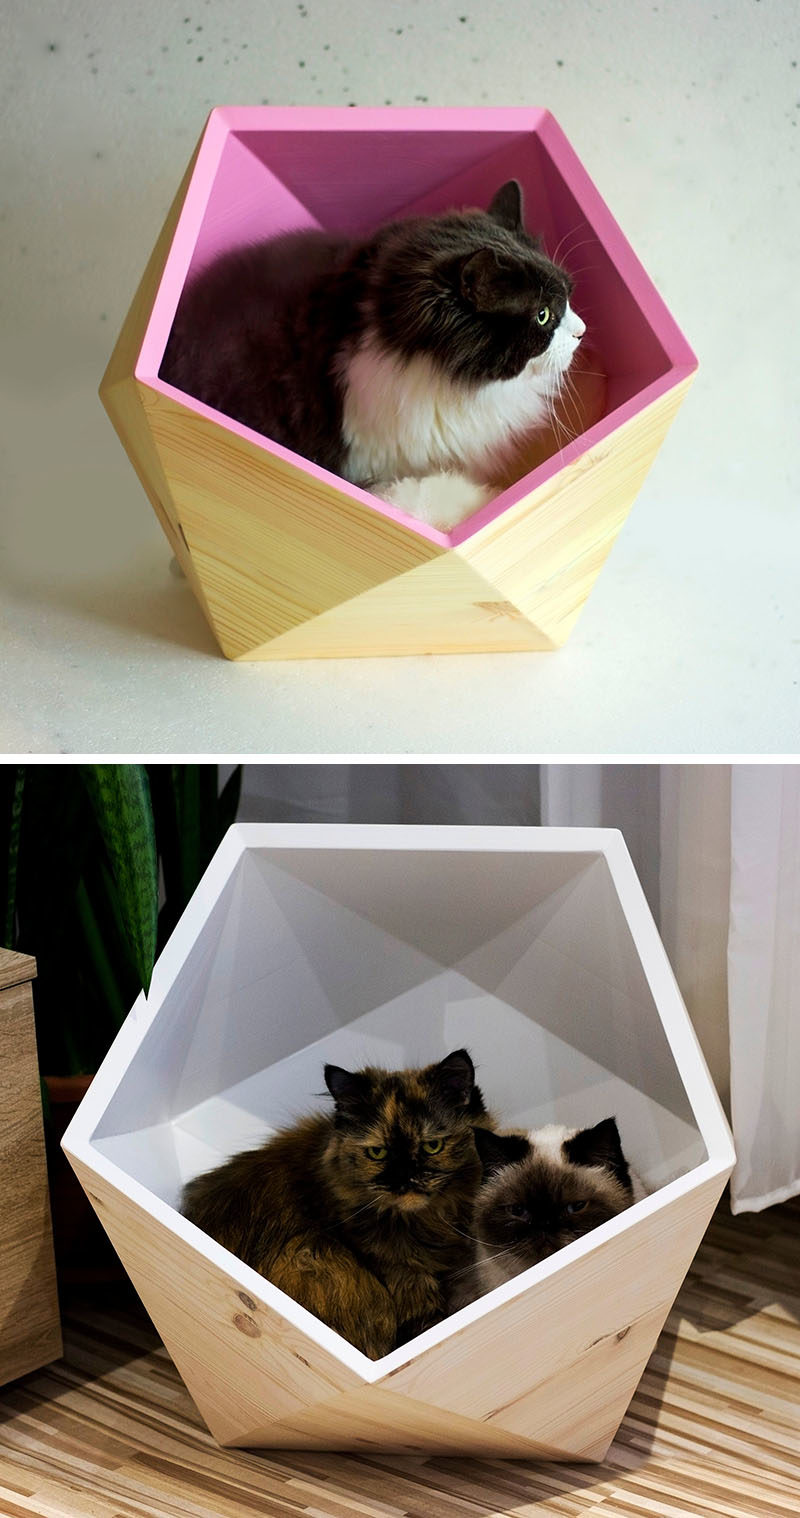 Ilshat Garipov of Catissa has designed a collection of modern cat beds and modular cat houses, that are made from pine wood and finished with sheepskin or faux fur. #ModernCatBed #ModernCatFurniture #ModernPetBed